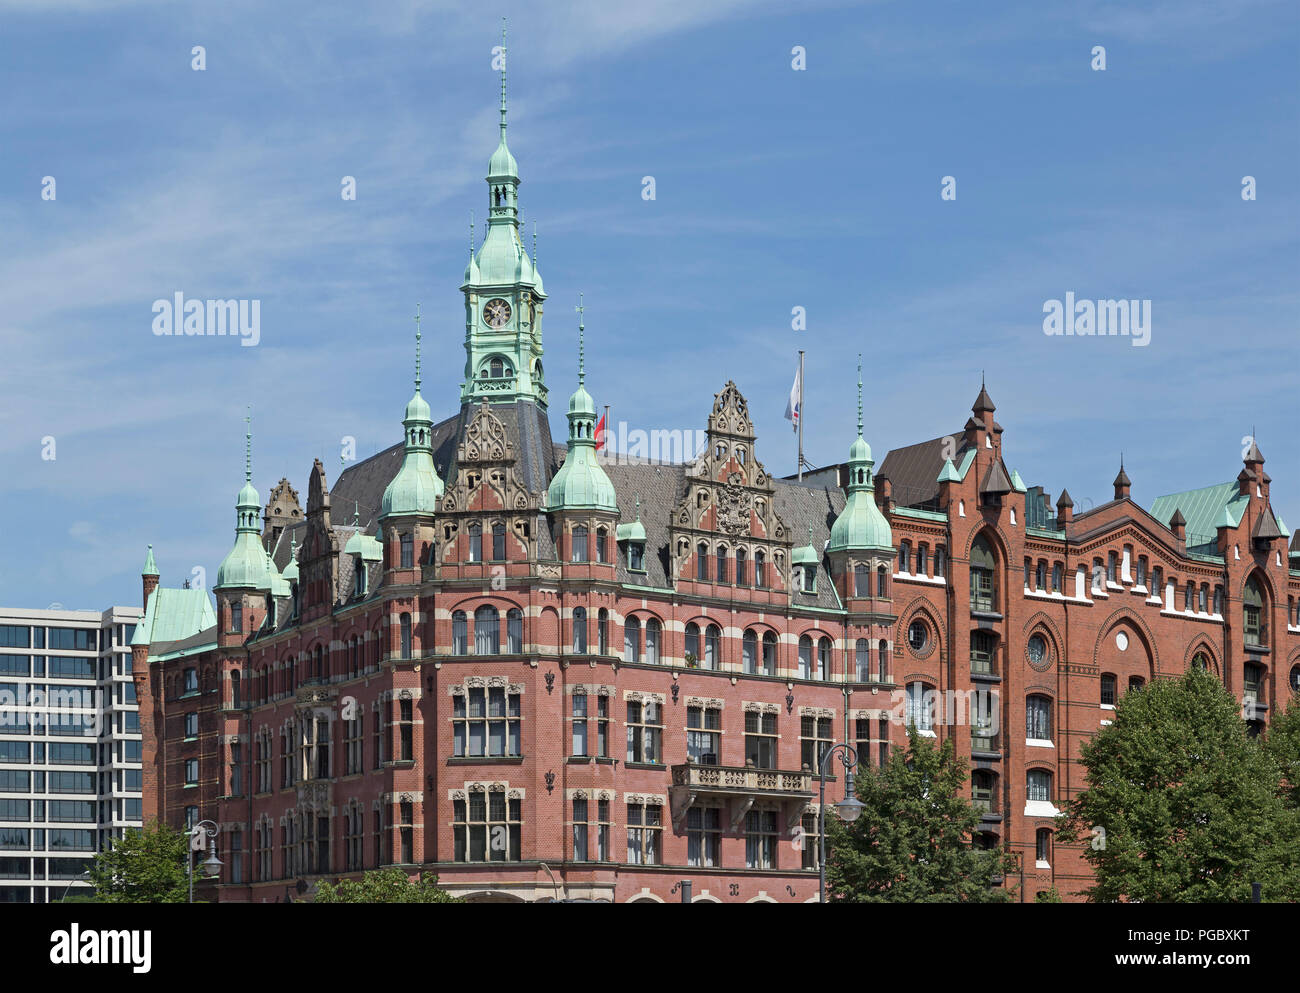 The so called town hall of the Speicherstadt (warehouse district), Hamburg, Germany - Stock Image